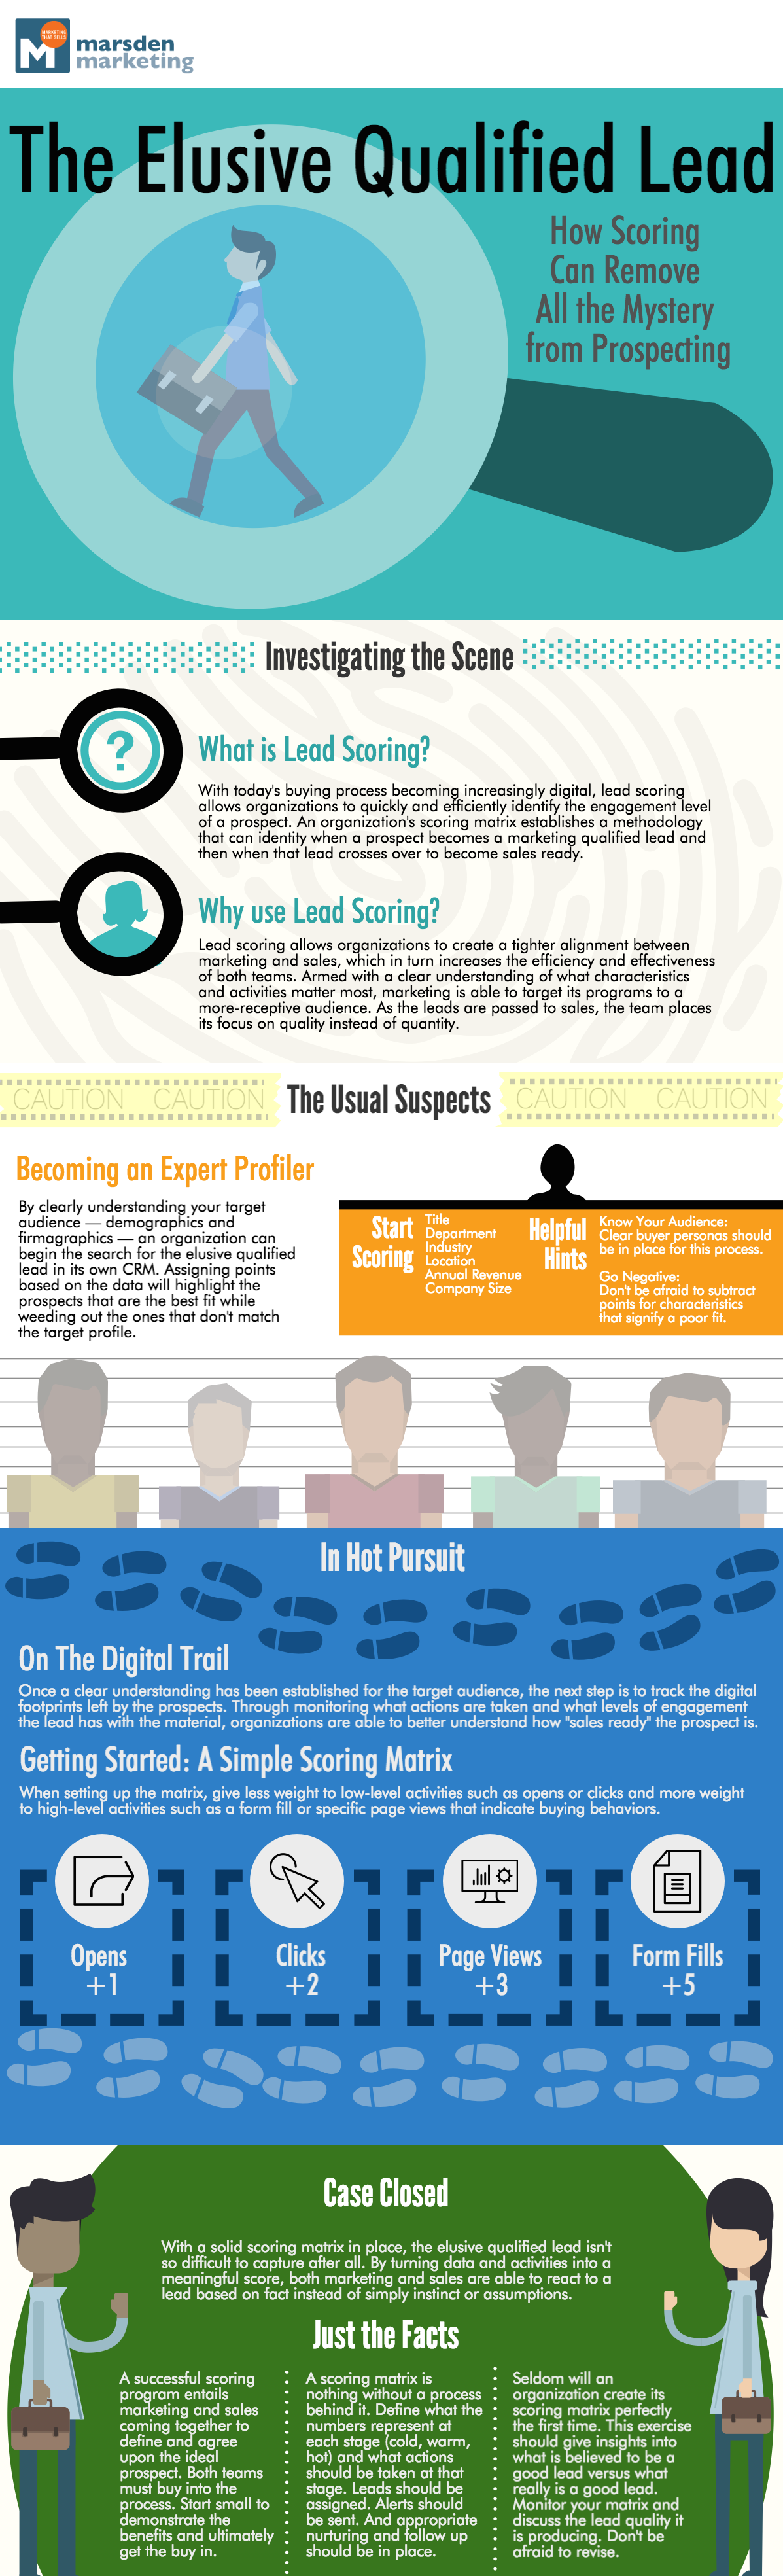 The Elusive Qualified Lead: How Scoring Can Remove All the Mystery from Prospecting